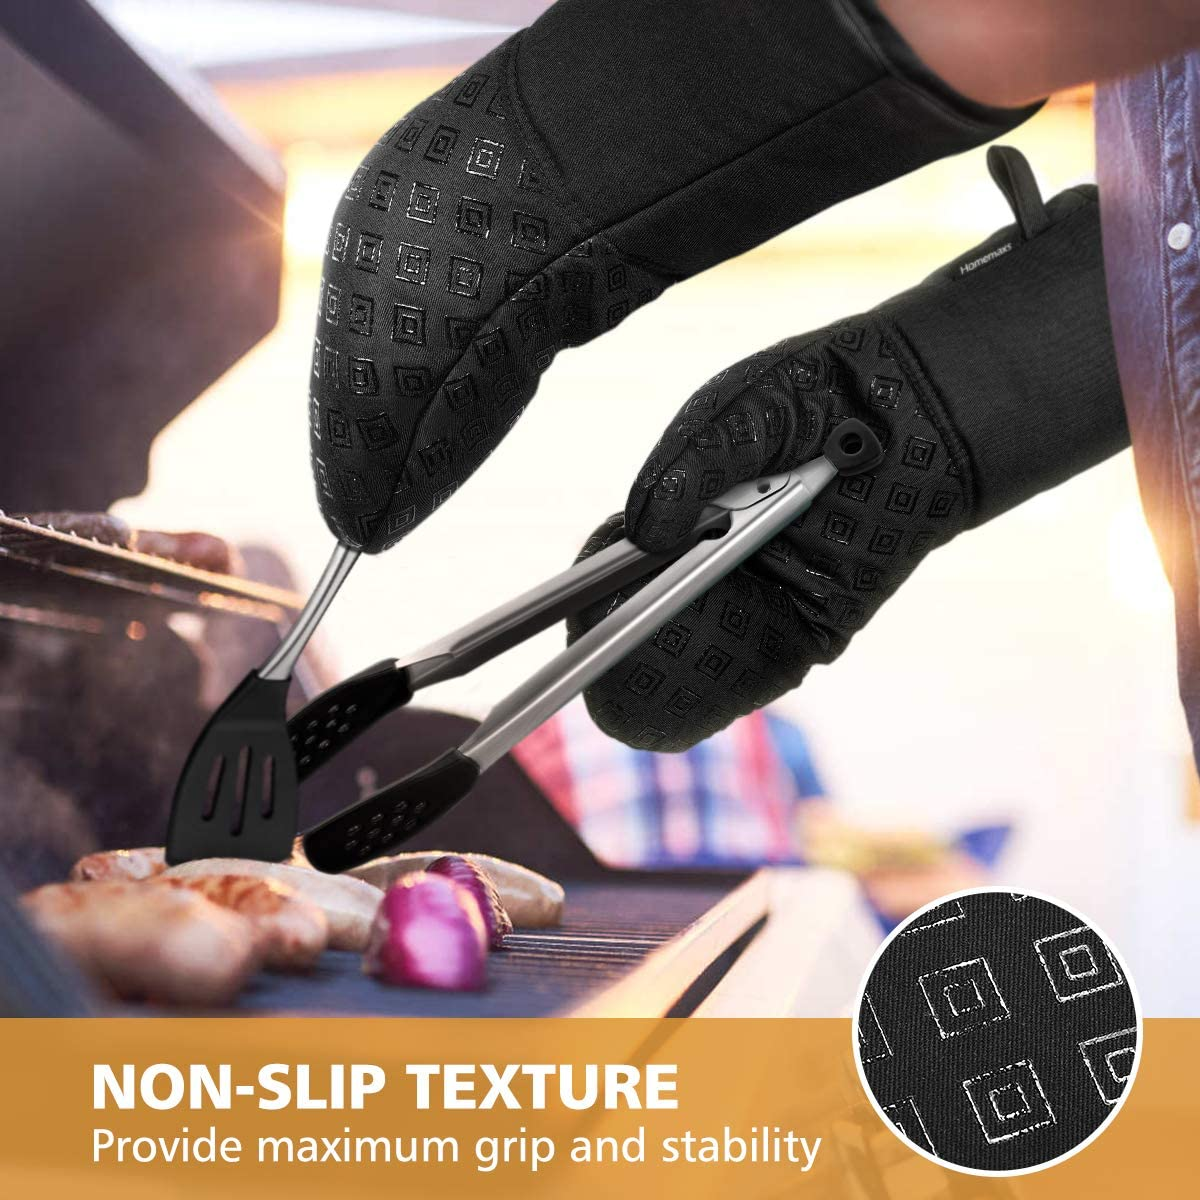 Heat Resistant Oven Mitts and Pot Holders 4pcs Set, Non-Slip Food Grade Kitchen Mitten Silicone Cooking Gloves (Black)